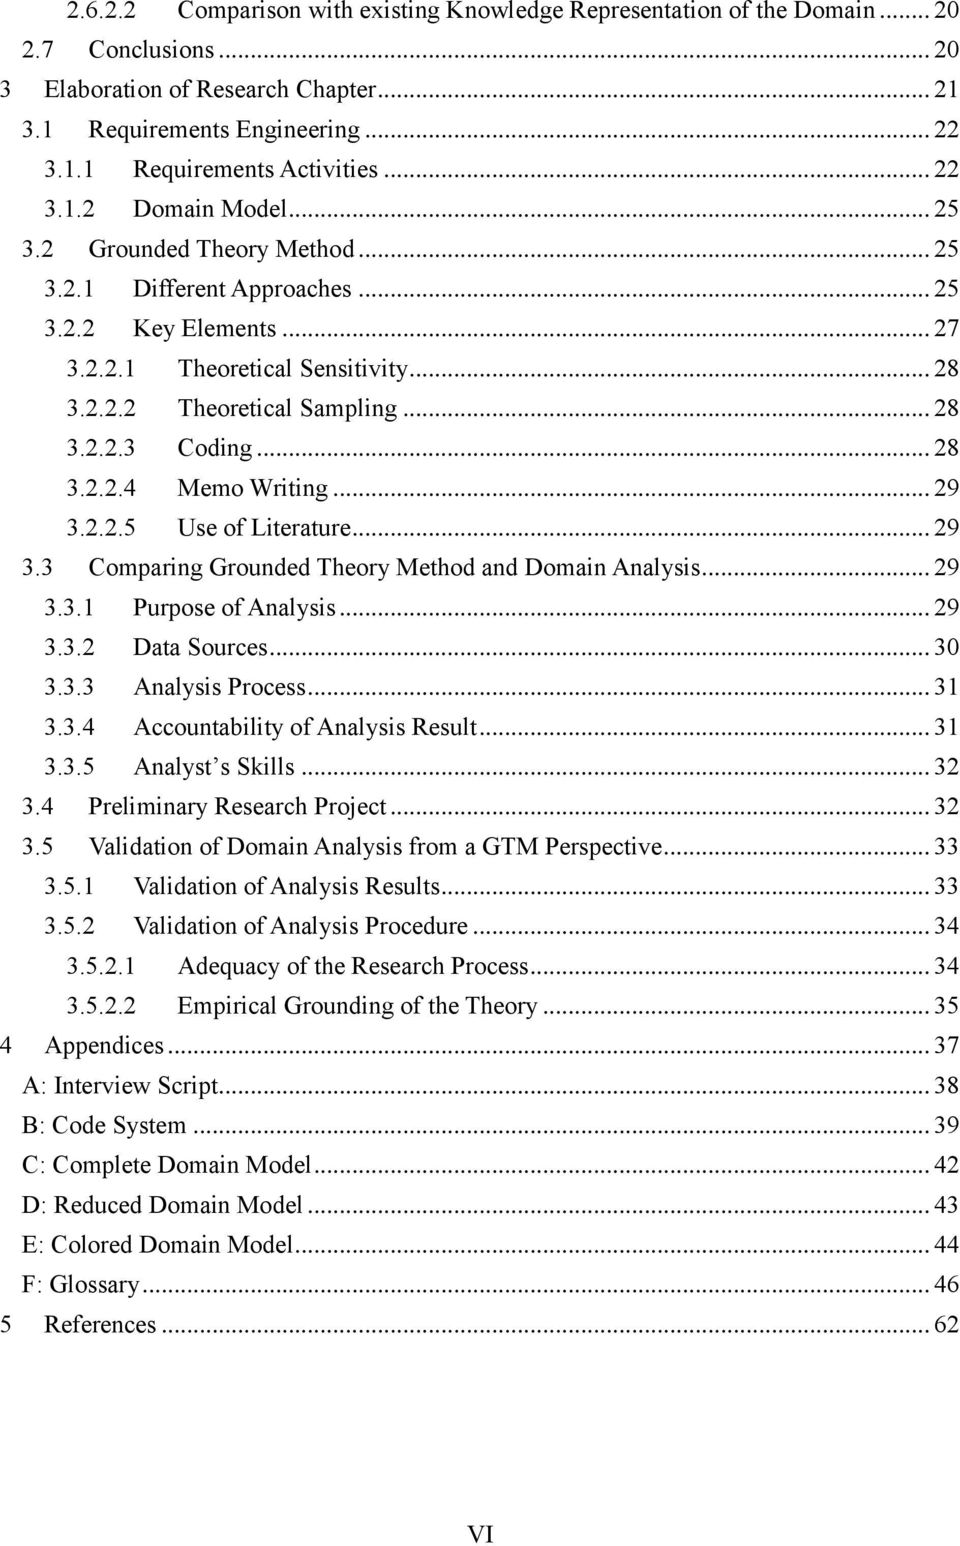 .. 28 3.2.2.4 Memo Writing... 29 3.2.2.5 Use of Literature... 29 3.3 Comparing Grounded Theory Method and Domain Analysis... 29 3.3.1 Purpose of Analysis... 29 3.3.2 Data Sources... 30 3.3.3 Analysis Process.